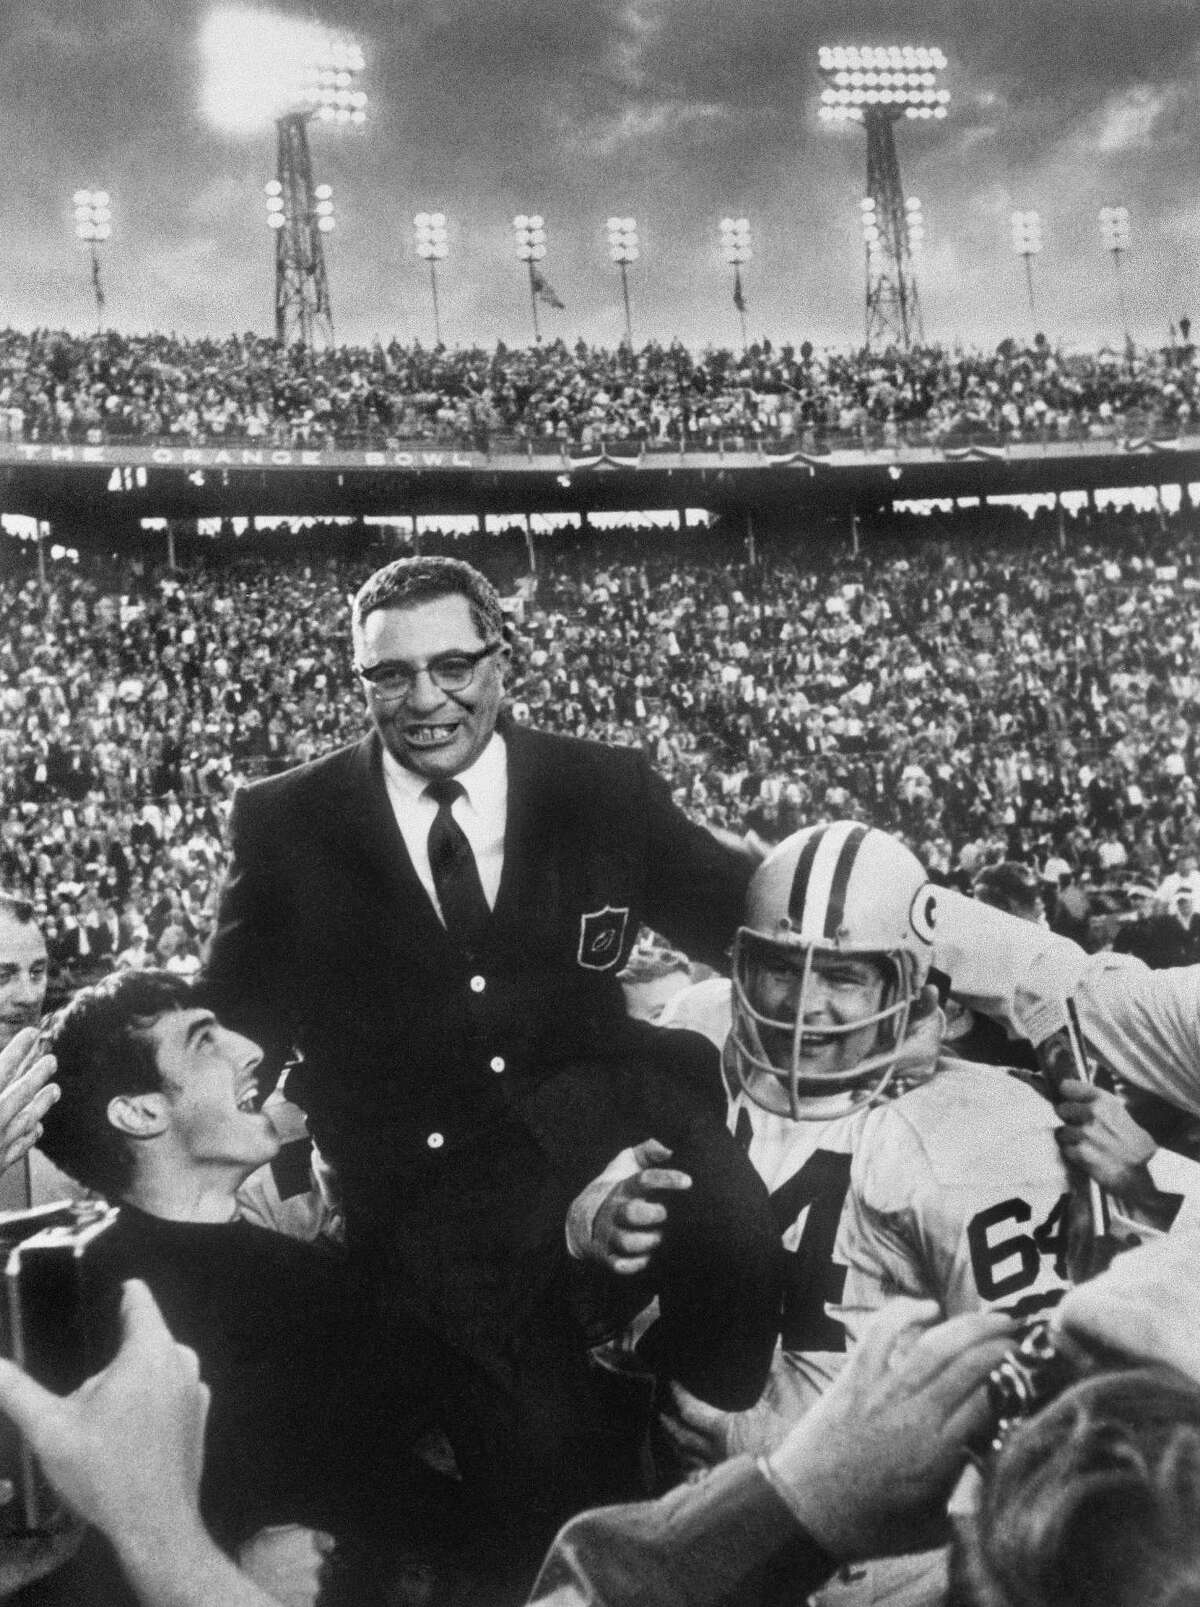 Green Bay Packers head coach Vince Lombardi is carried off the field by team members, including guard Jerry Kramer, right, after the Packers defeated the Oakland Raiders 33-14 in Super Bowl II, Jan. 14, 1968, in Miami. After winning the first two Super Bowls, Green Bay would not win the game again until 1997, but the Super Bowl trophy has been named the Vince Lombardi Trophy since the coachés death in 1970. (AP Photo)